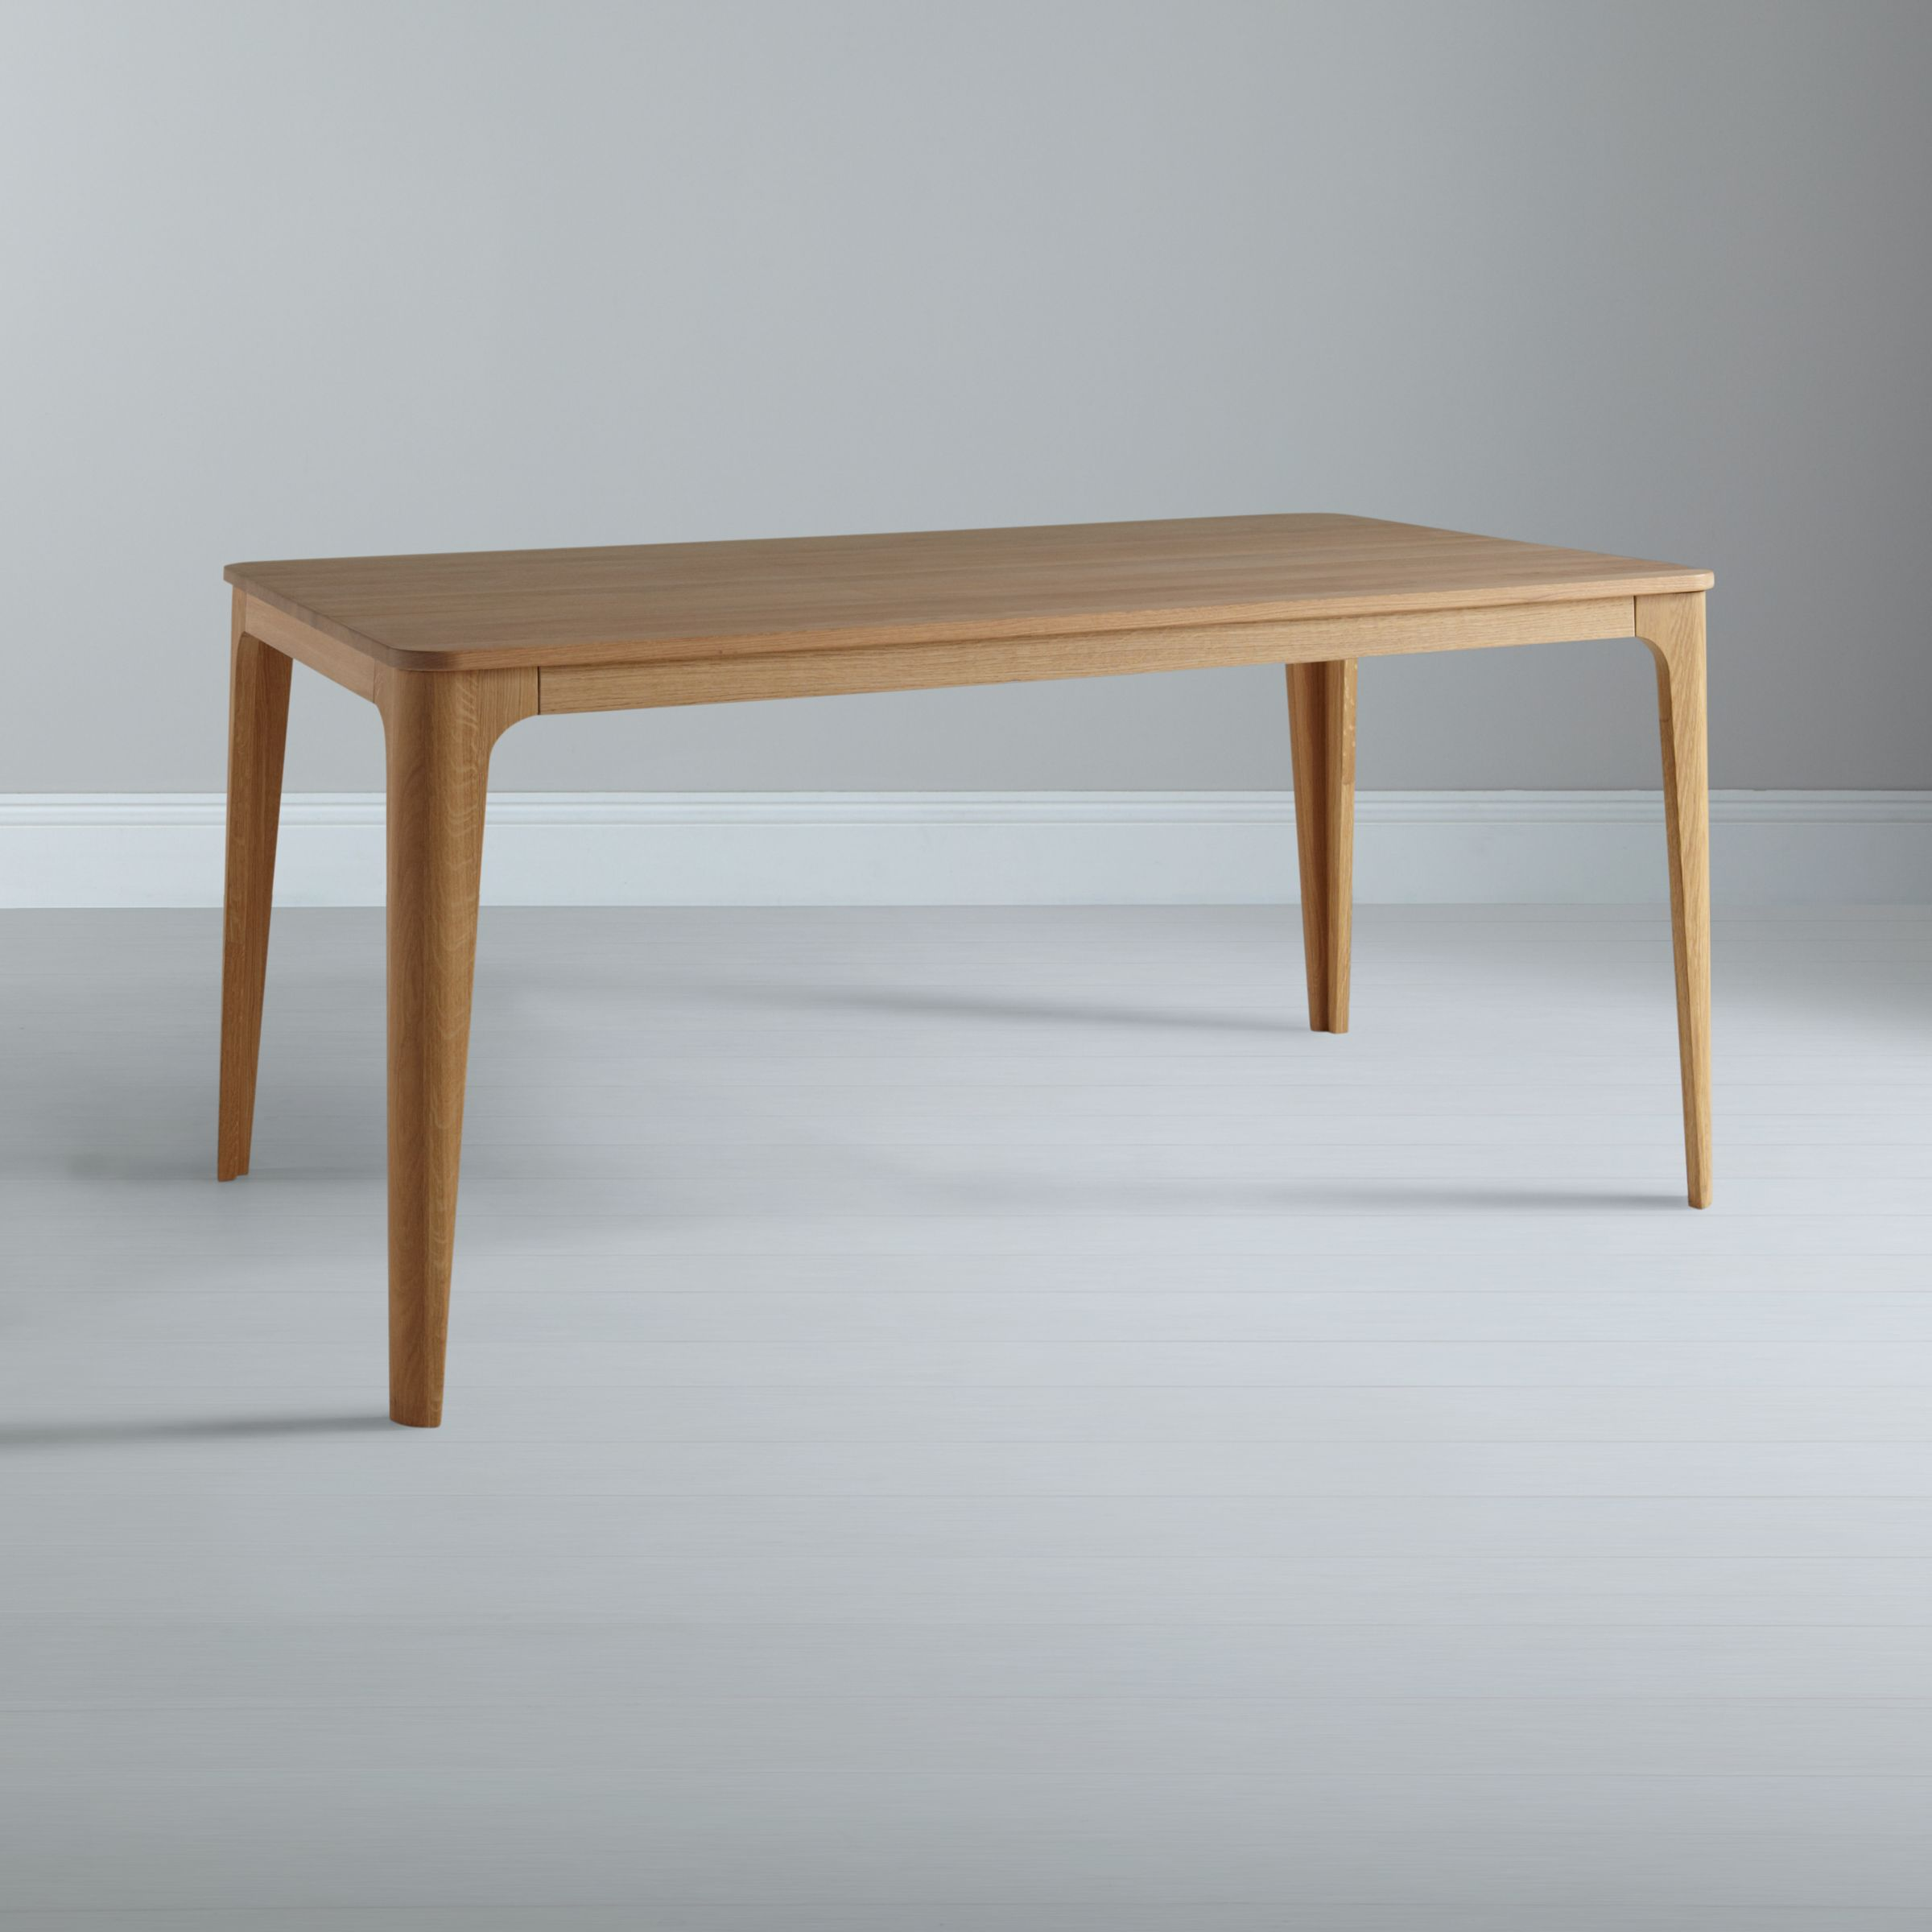 john lewis dining tables : 230942315 from www.comparestoreprices.co.uk size 2400 x 2400 jpeg 180kB